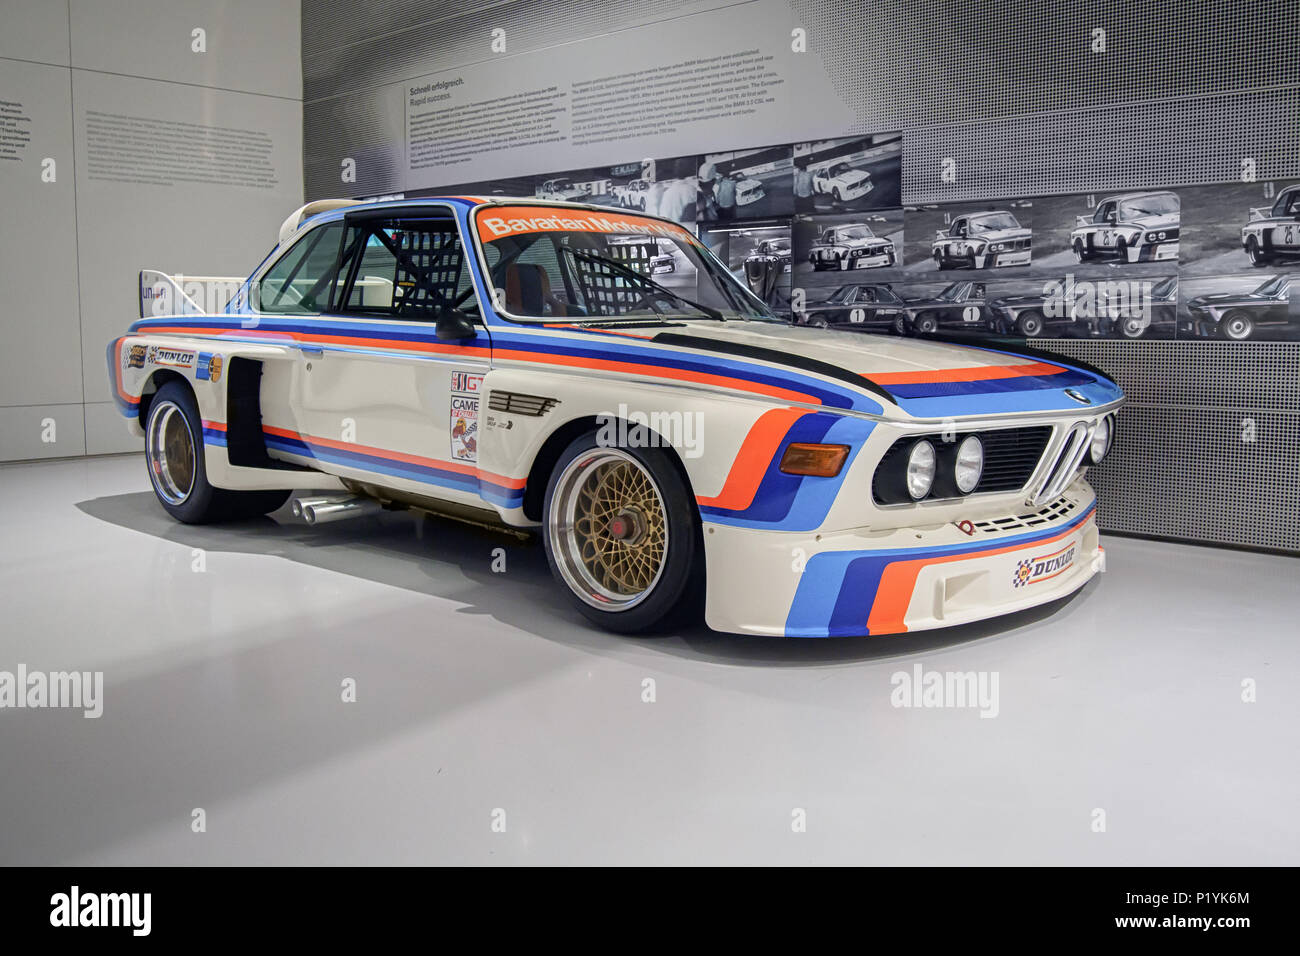 MUNICH, GERMANY-APRIL 4, 2017: 1975 BMW 3.0 CSL (Drivers: Stuck, Posey, Redman) in the BMW Museum. - Stock Image